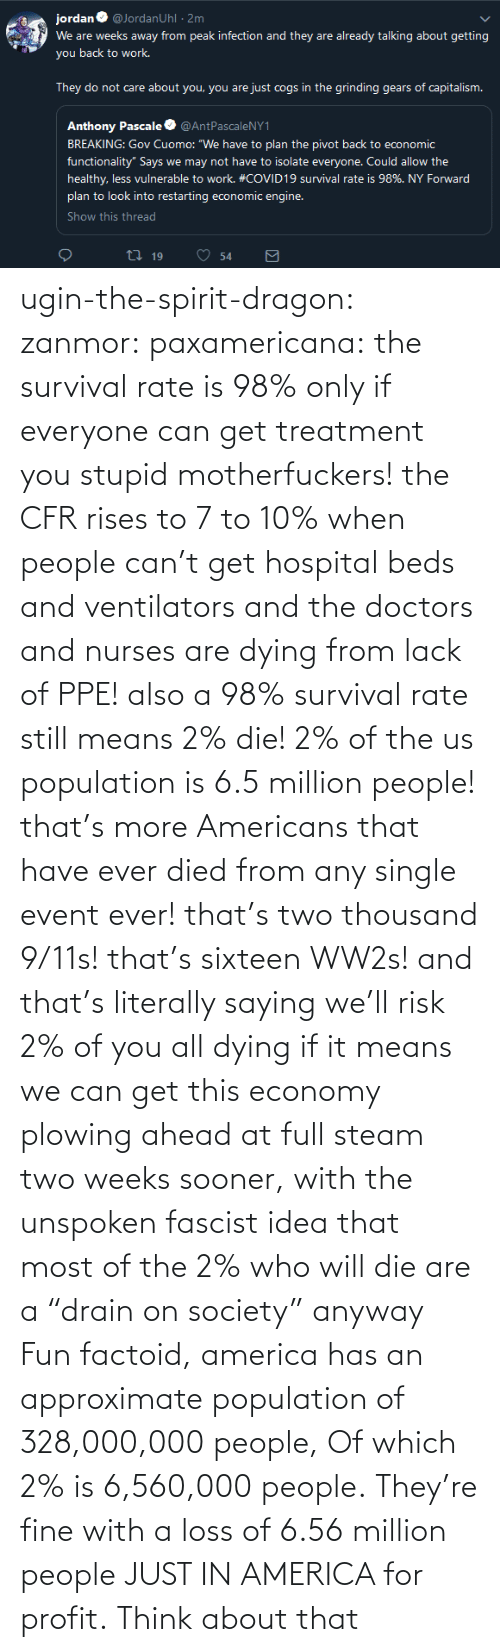 "lack: ugin-the-spirit-dragon: zanmor:   paxamericana:  the survival rate is 98% only if everyone can get treatment you stupid motherfuckers! the CFR rises to 7 to 10% when people can't get hospital beds and ventilators and the doctors and nurses are dying from lack of PPE!  also a 98% survival rate still means 2% die! 2% of the us population is 6.5 million people! that's more Americans that have ever died from any single event ever! that's two thousand 9/11s! that's sixteen WW2s!  and that's literally saying we'll risk 2% of you all dying if it means we can get this economy plowing ahead at full steam two weeks sooner, with the unspoken fascist idea that most of the 2% who will die are a ""drain on society"" anyway    Fun factoid, america has an approximate population of 328,000,000 people,  Of which 2% is 6,560,000 people. They're fine with a loss of 6.56 million people JUST IN AMERICA for profit. Think about that"